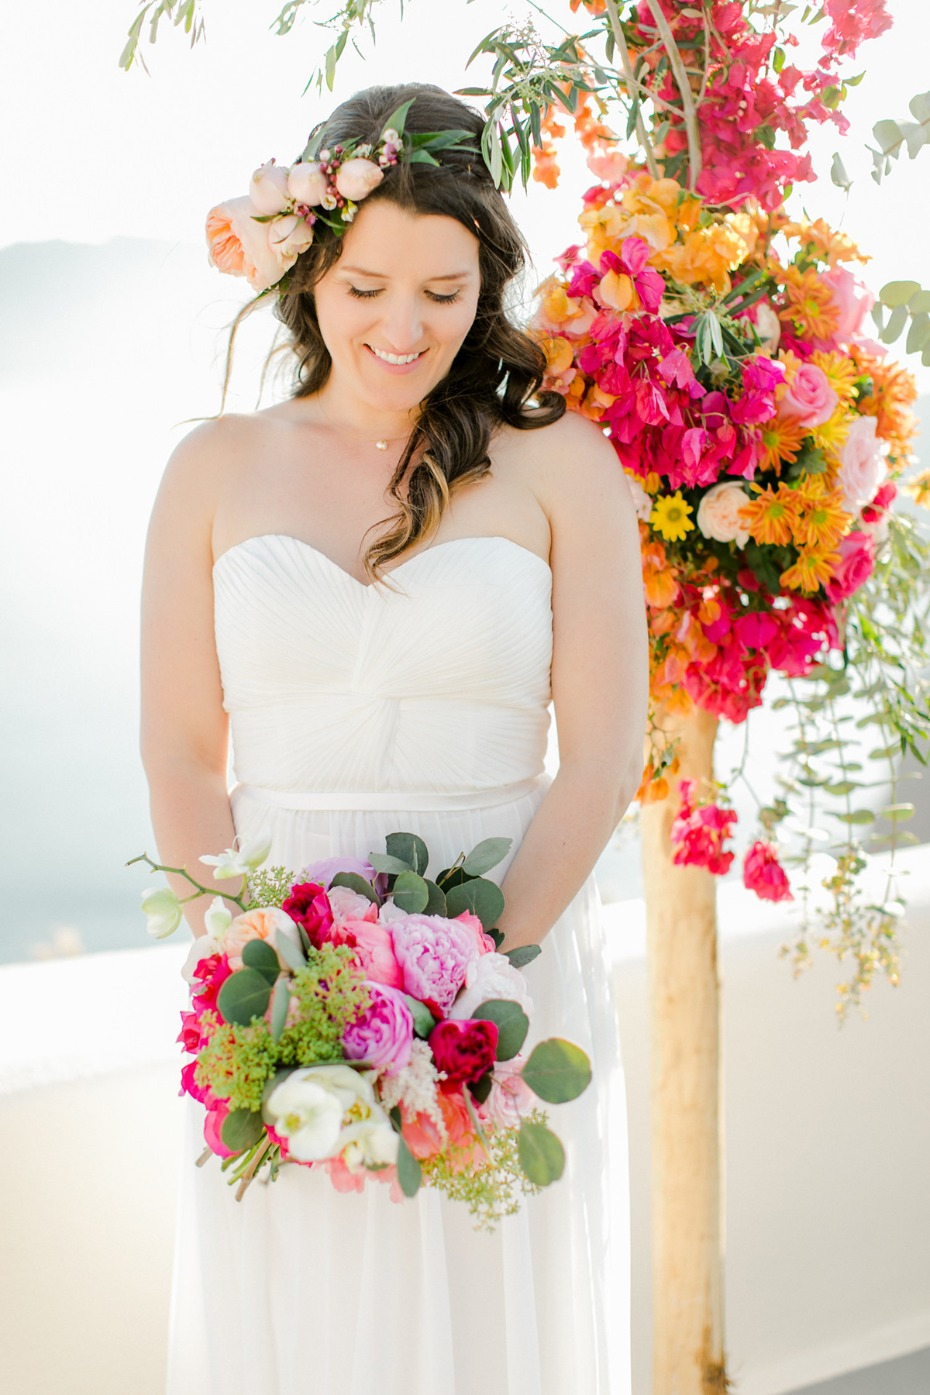 Bright and colorful bridal style